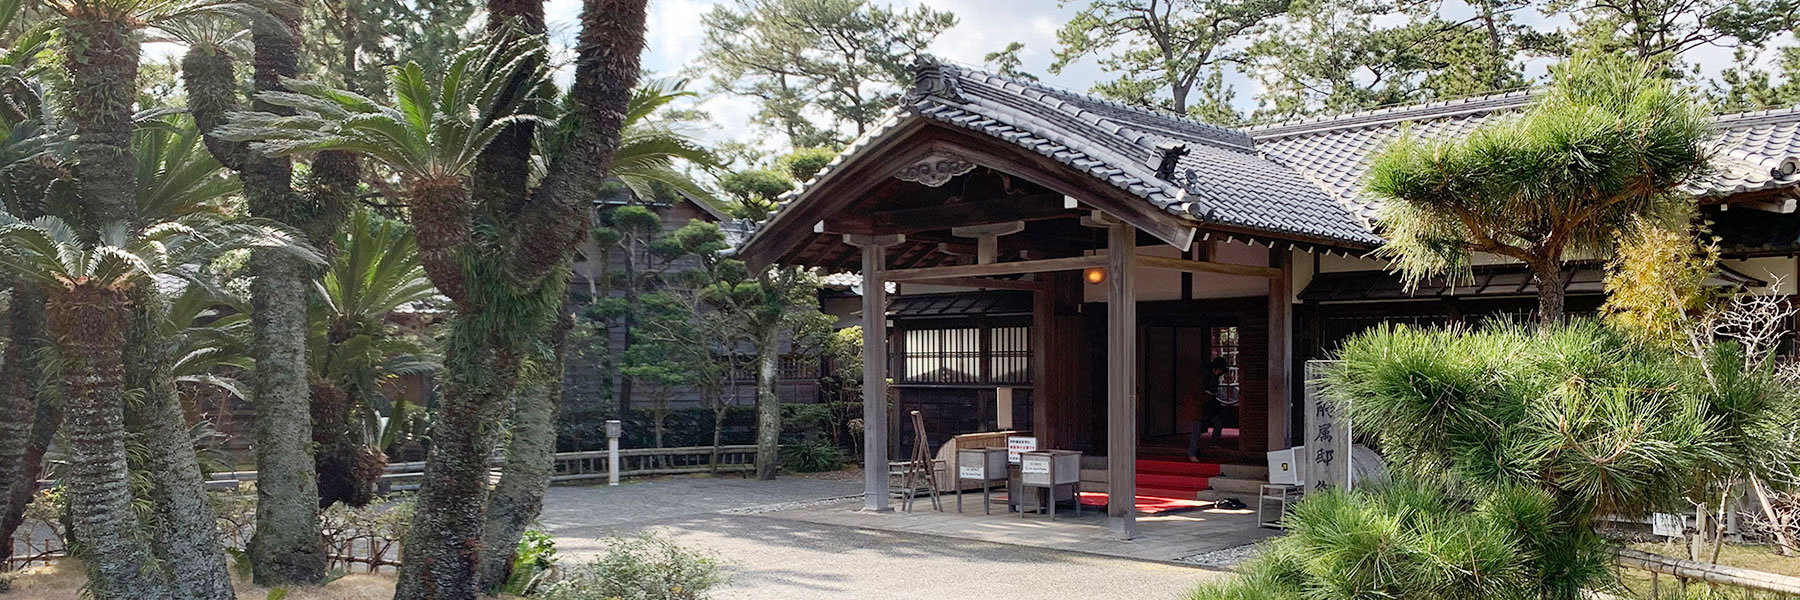 Nishi Attached House